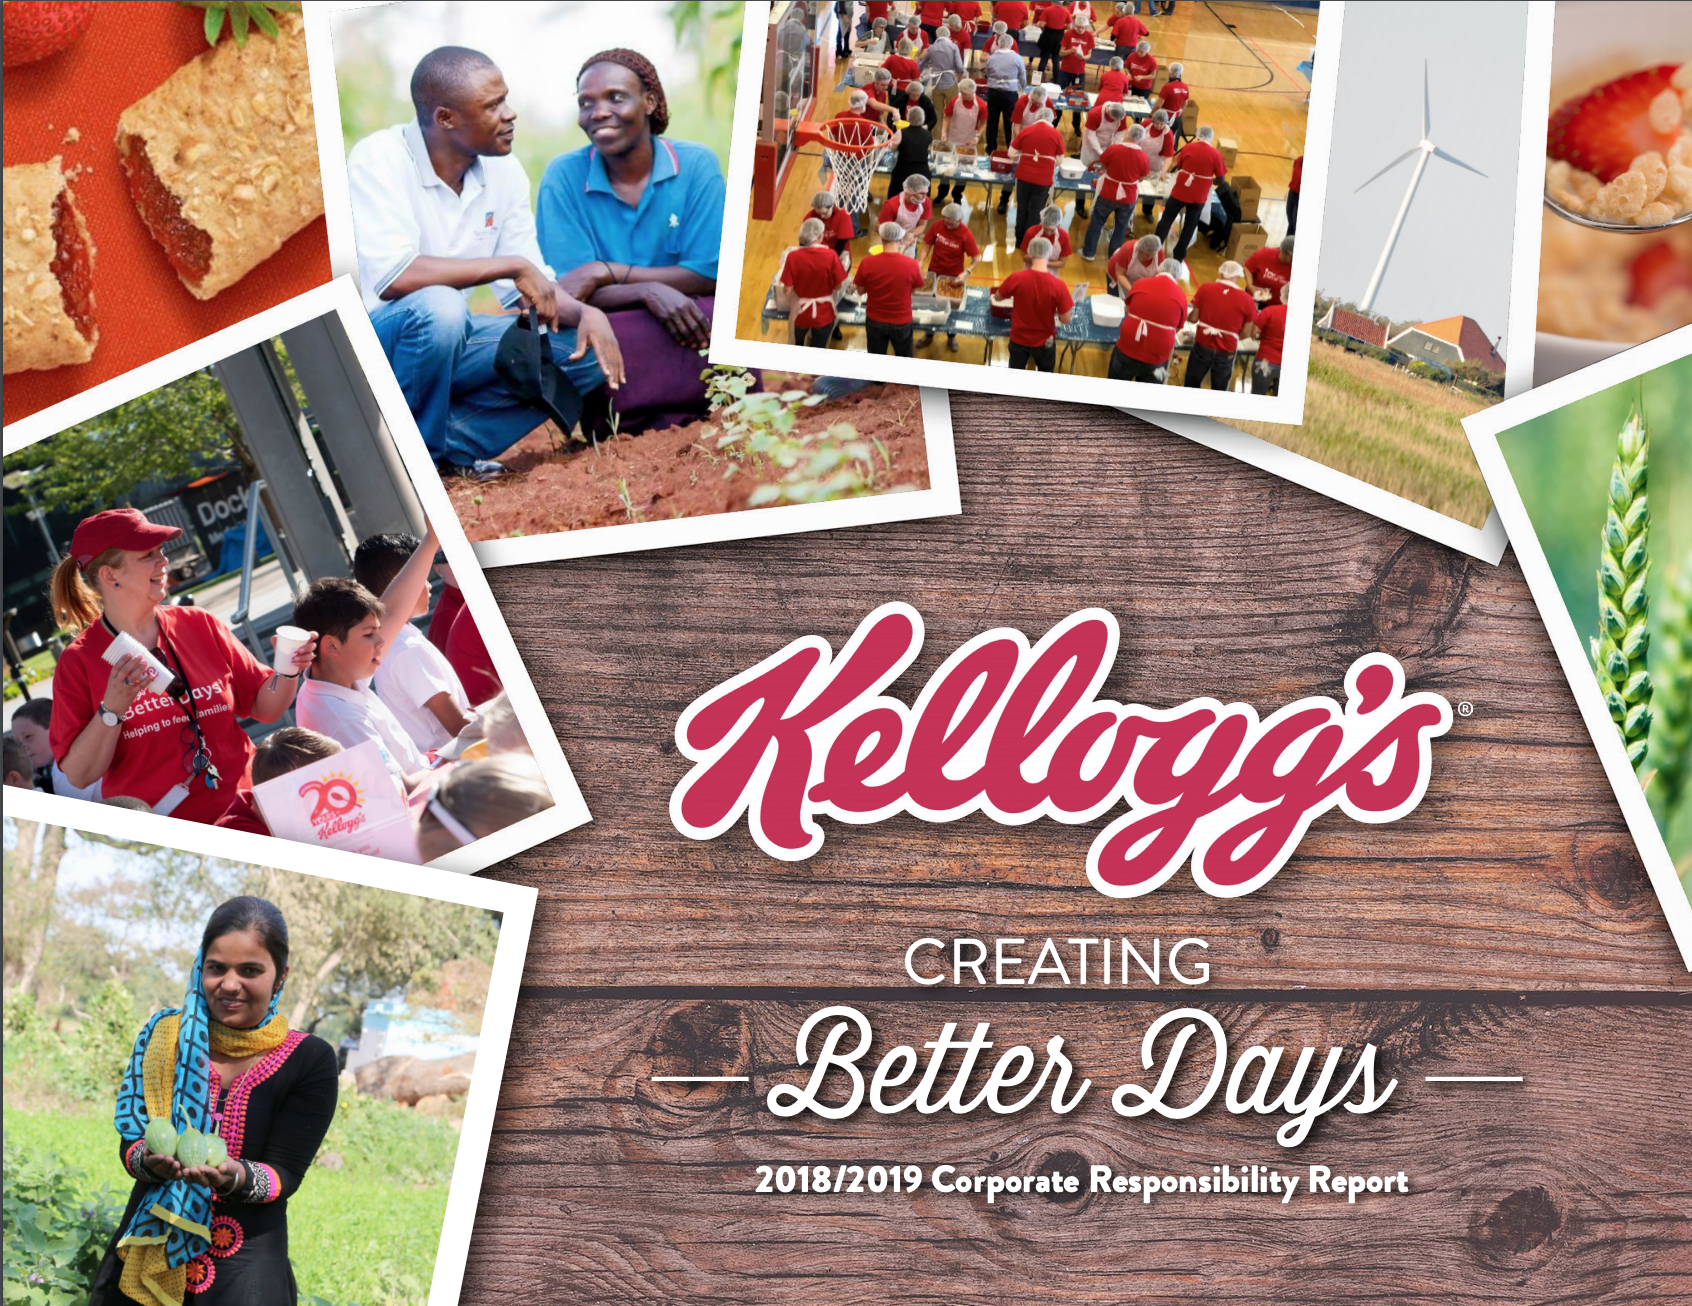 In Review: Kellogg's Corporate Responsibility Report